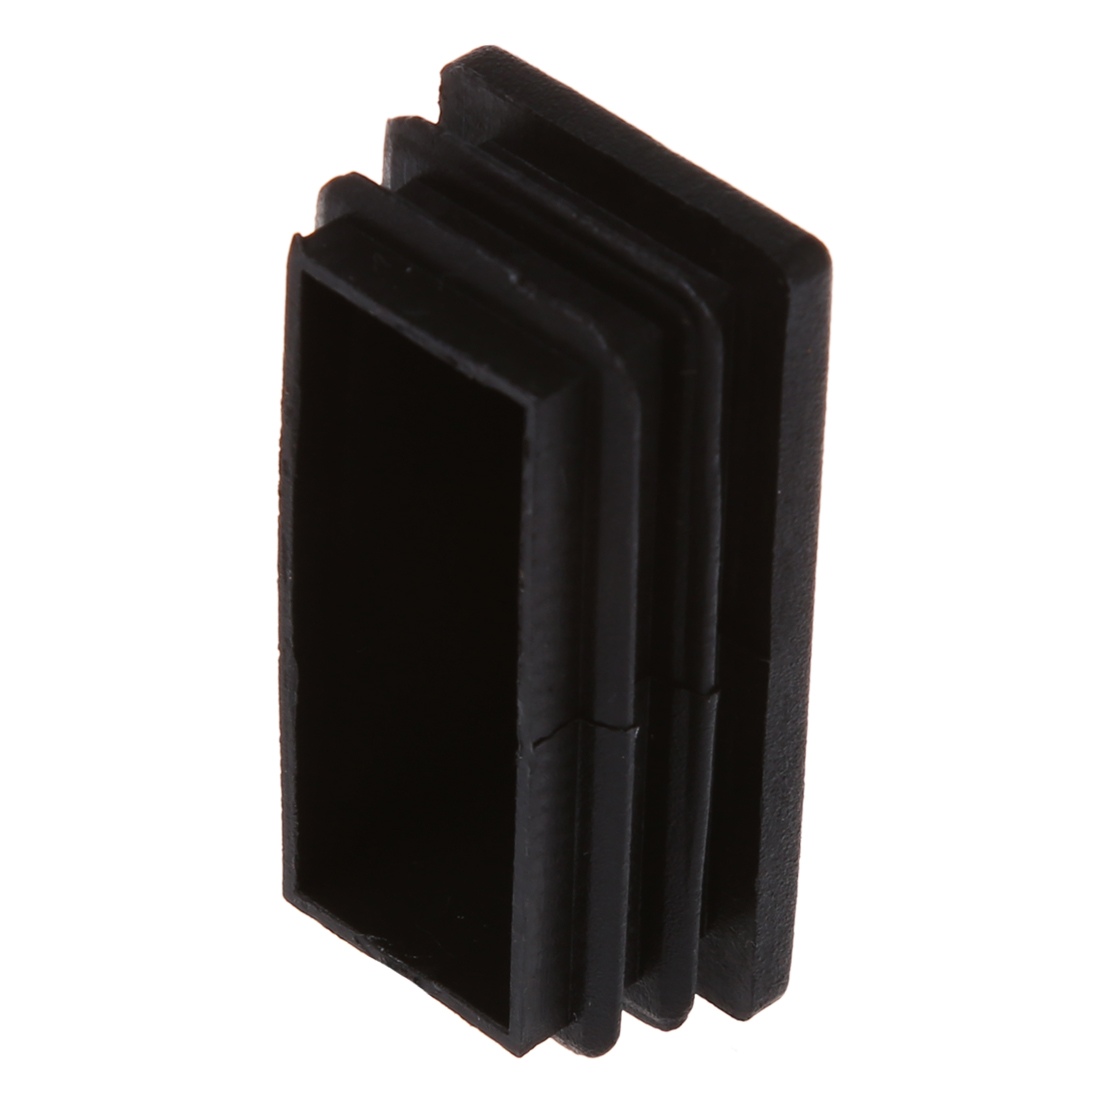 SZS Hot Plastic Rectangle Tube Inserts End Blanking Cap 25x50mm 10 Pcs Black vsen hot styleluggage bag replacement plastic 1 side rectangle buckle 10 pcs